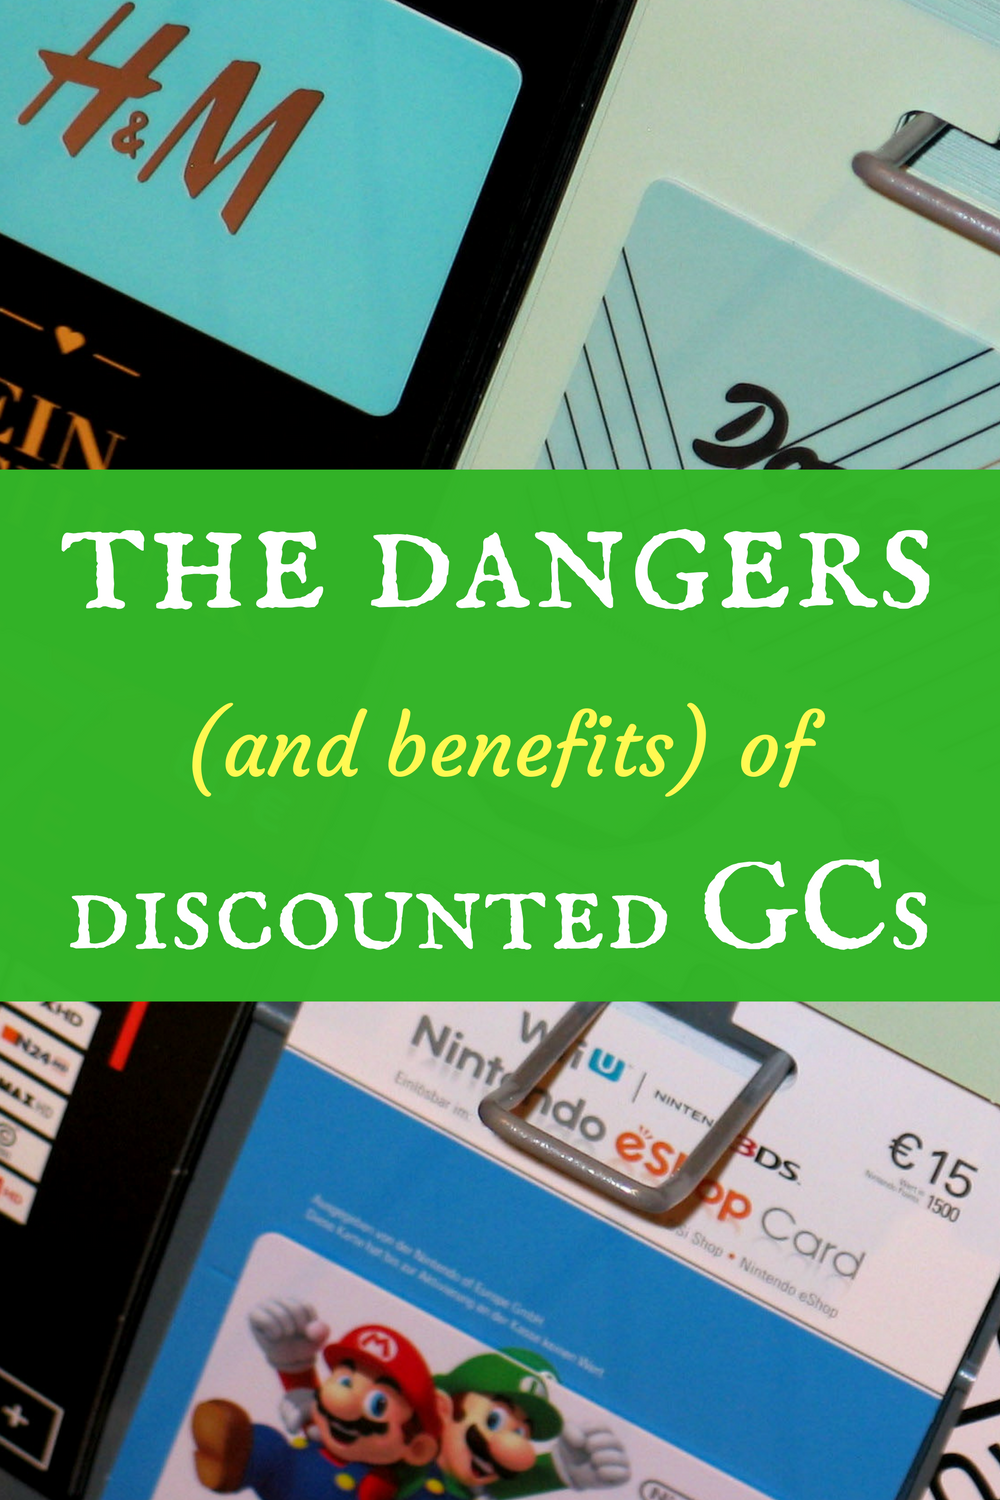 Discounted GCs can be a great frugal tool -- or a dangerous one.